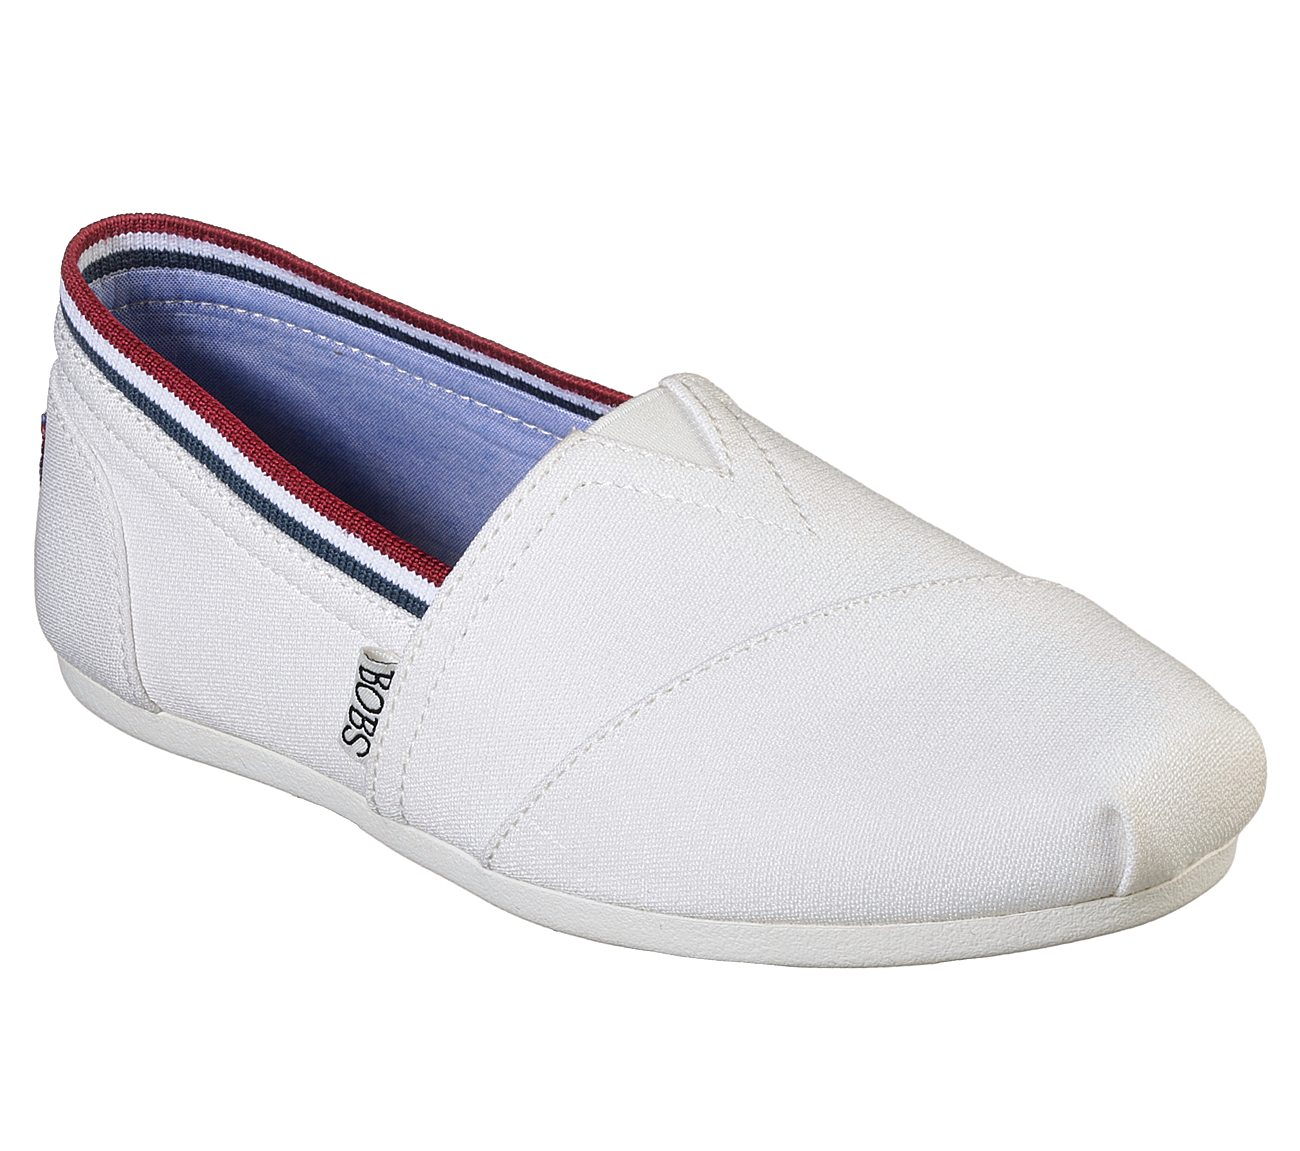 Skechers Bobs Plush Color: Blue Red Size: 6.0